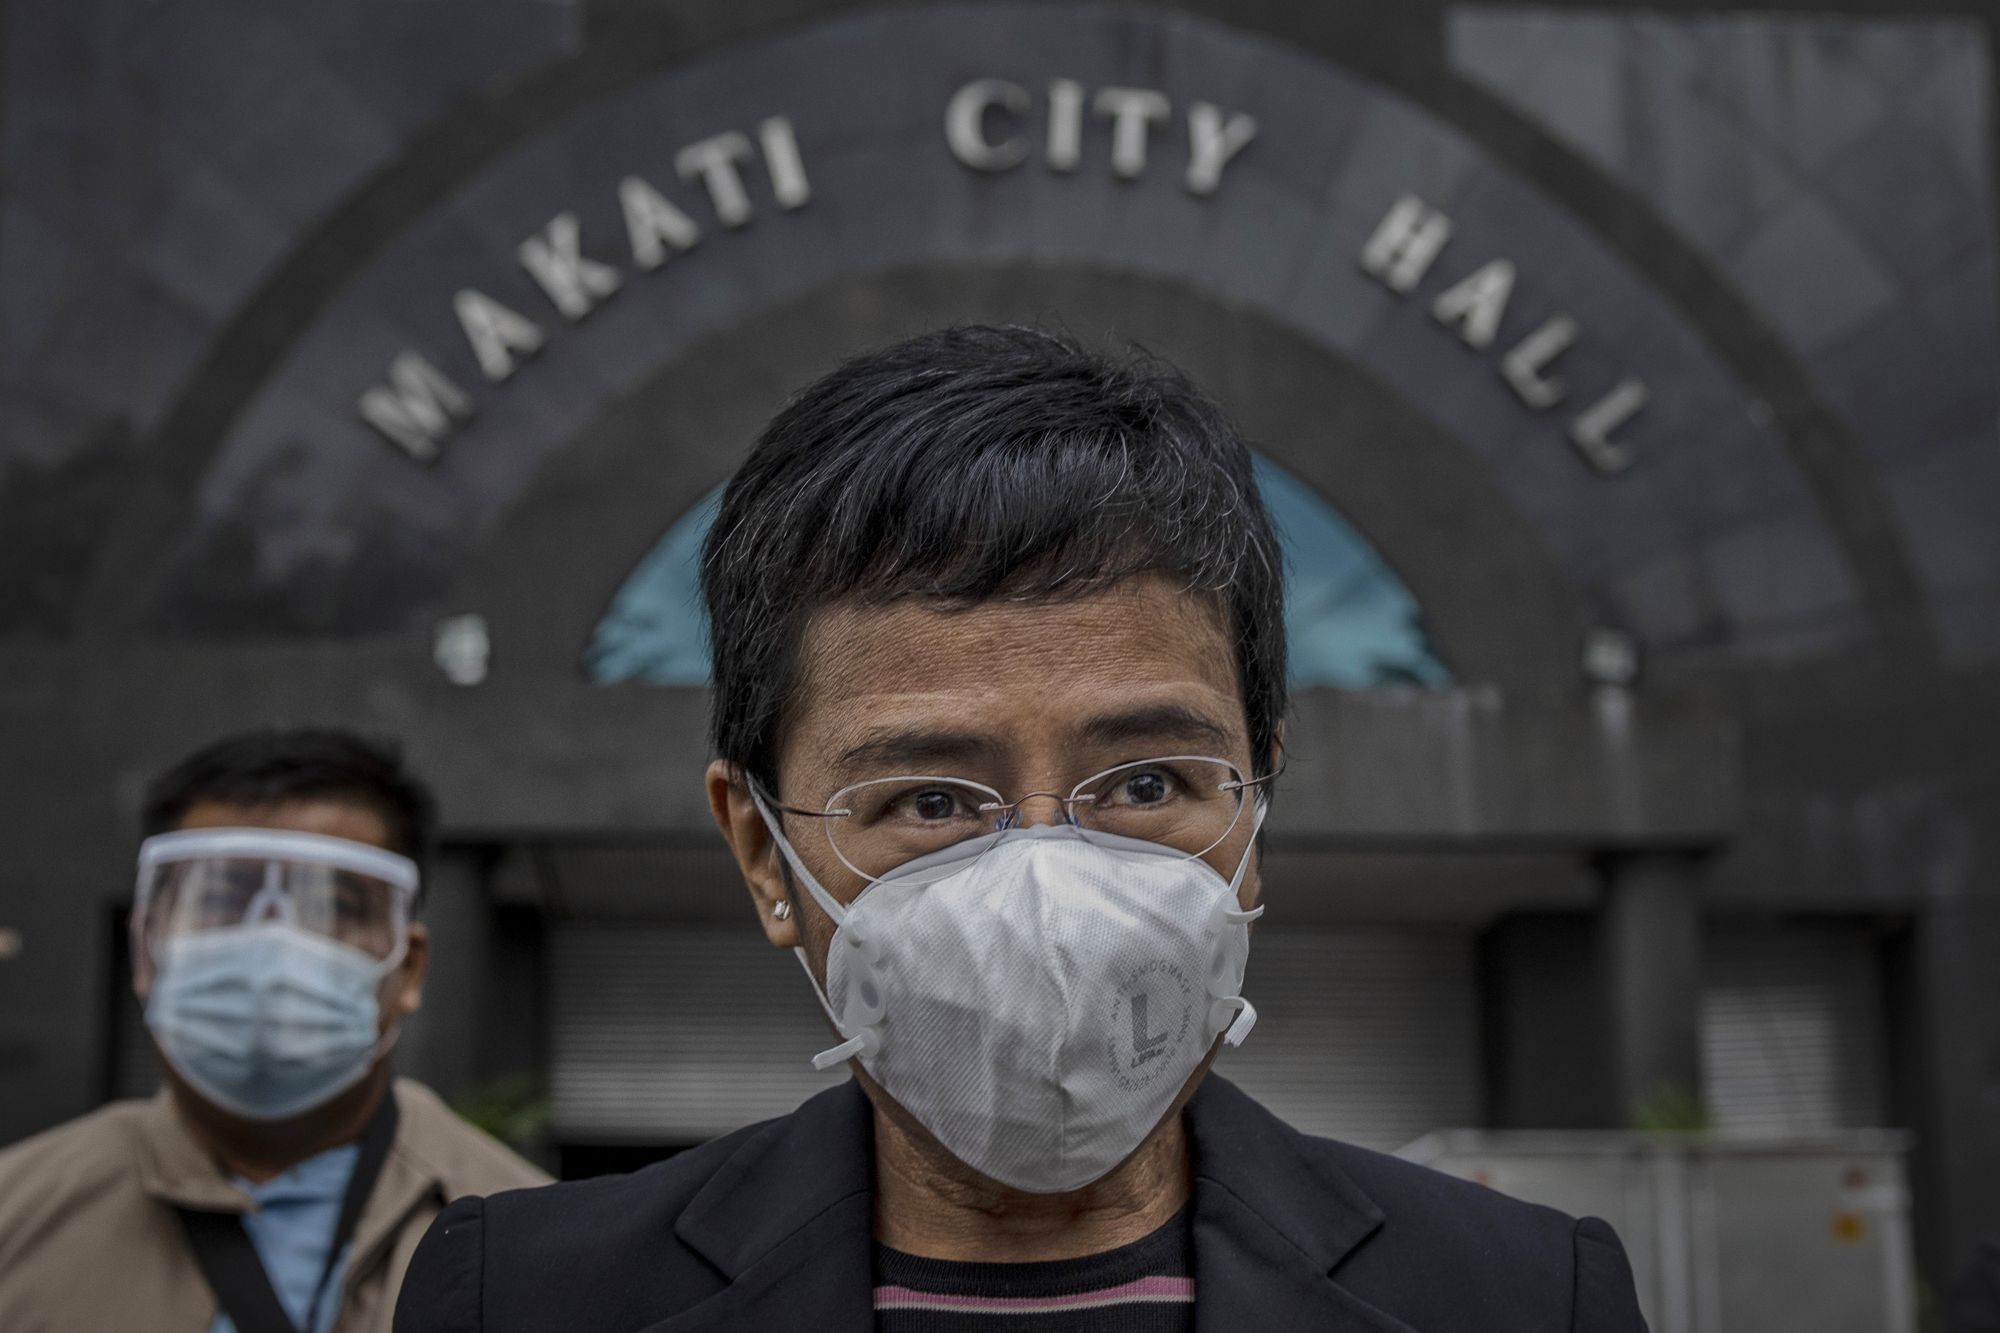 """Makati, Philippines - December 15, 2020. Maria Ressa, CEO of news website Rappler, faces reporters after appearing in court for a second """"cyber-libel"""" charge against her.  (Photo by Ezra Acayan/Getty Images)"""